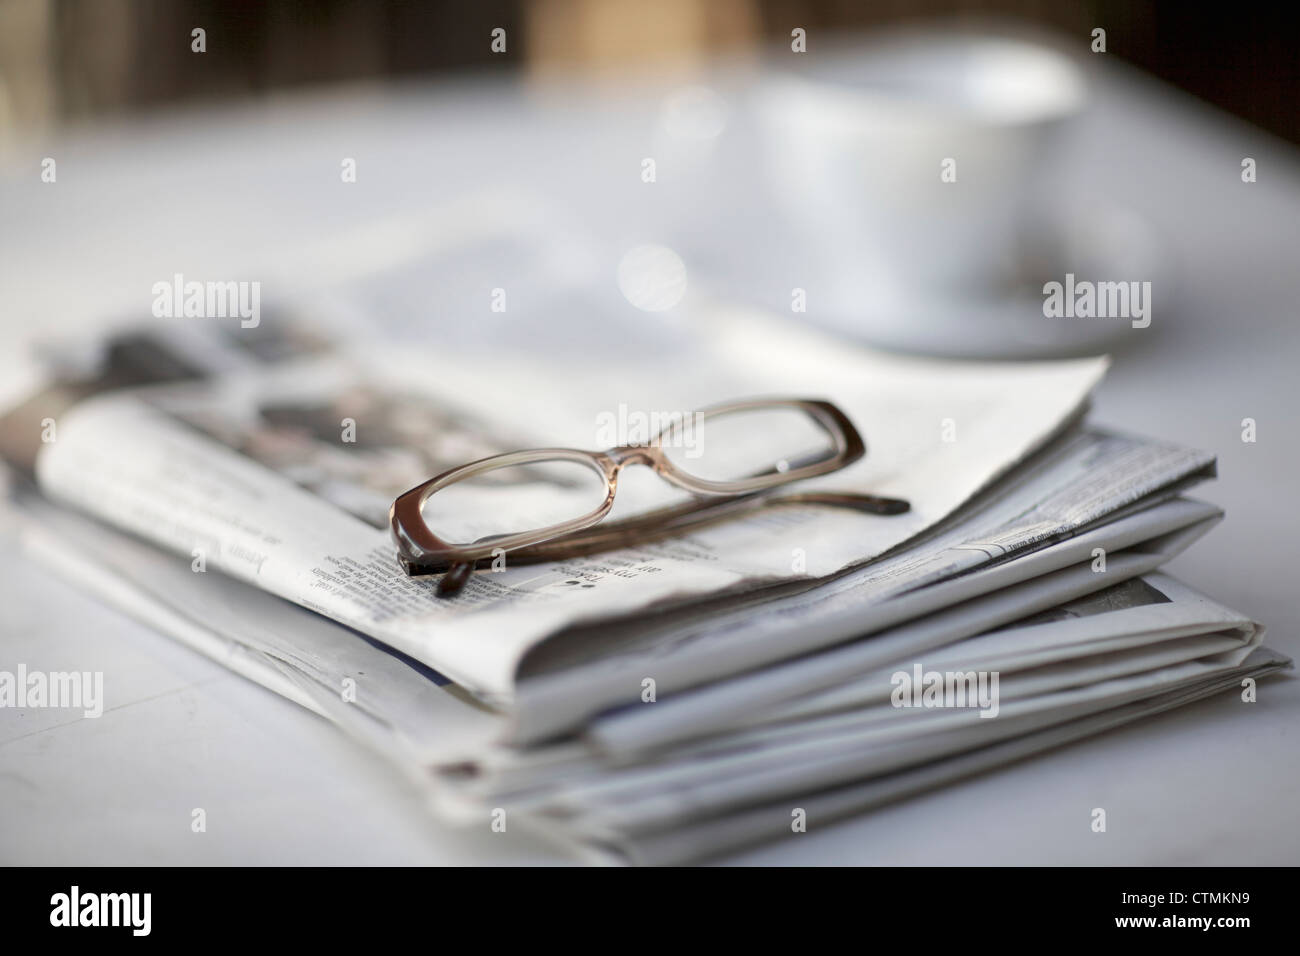 A pair of reading glasses sitting on top of a newspaper, Johannesburg, Gauteng, South Africa Stock Photo